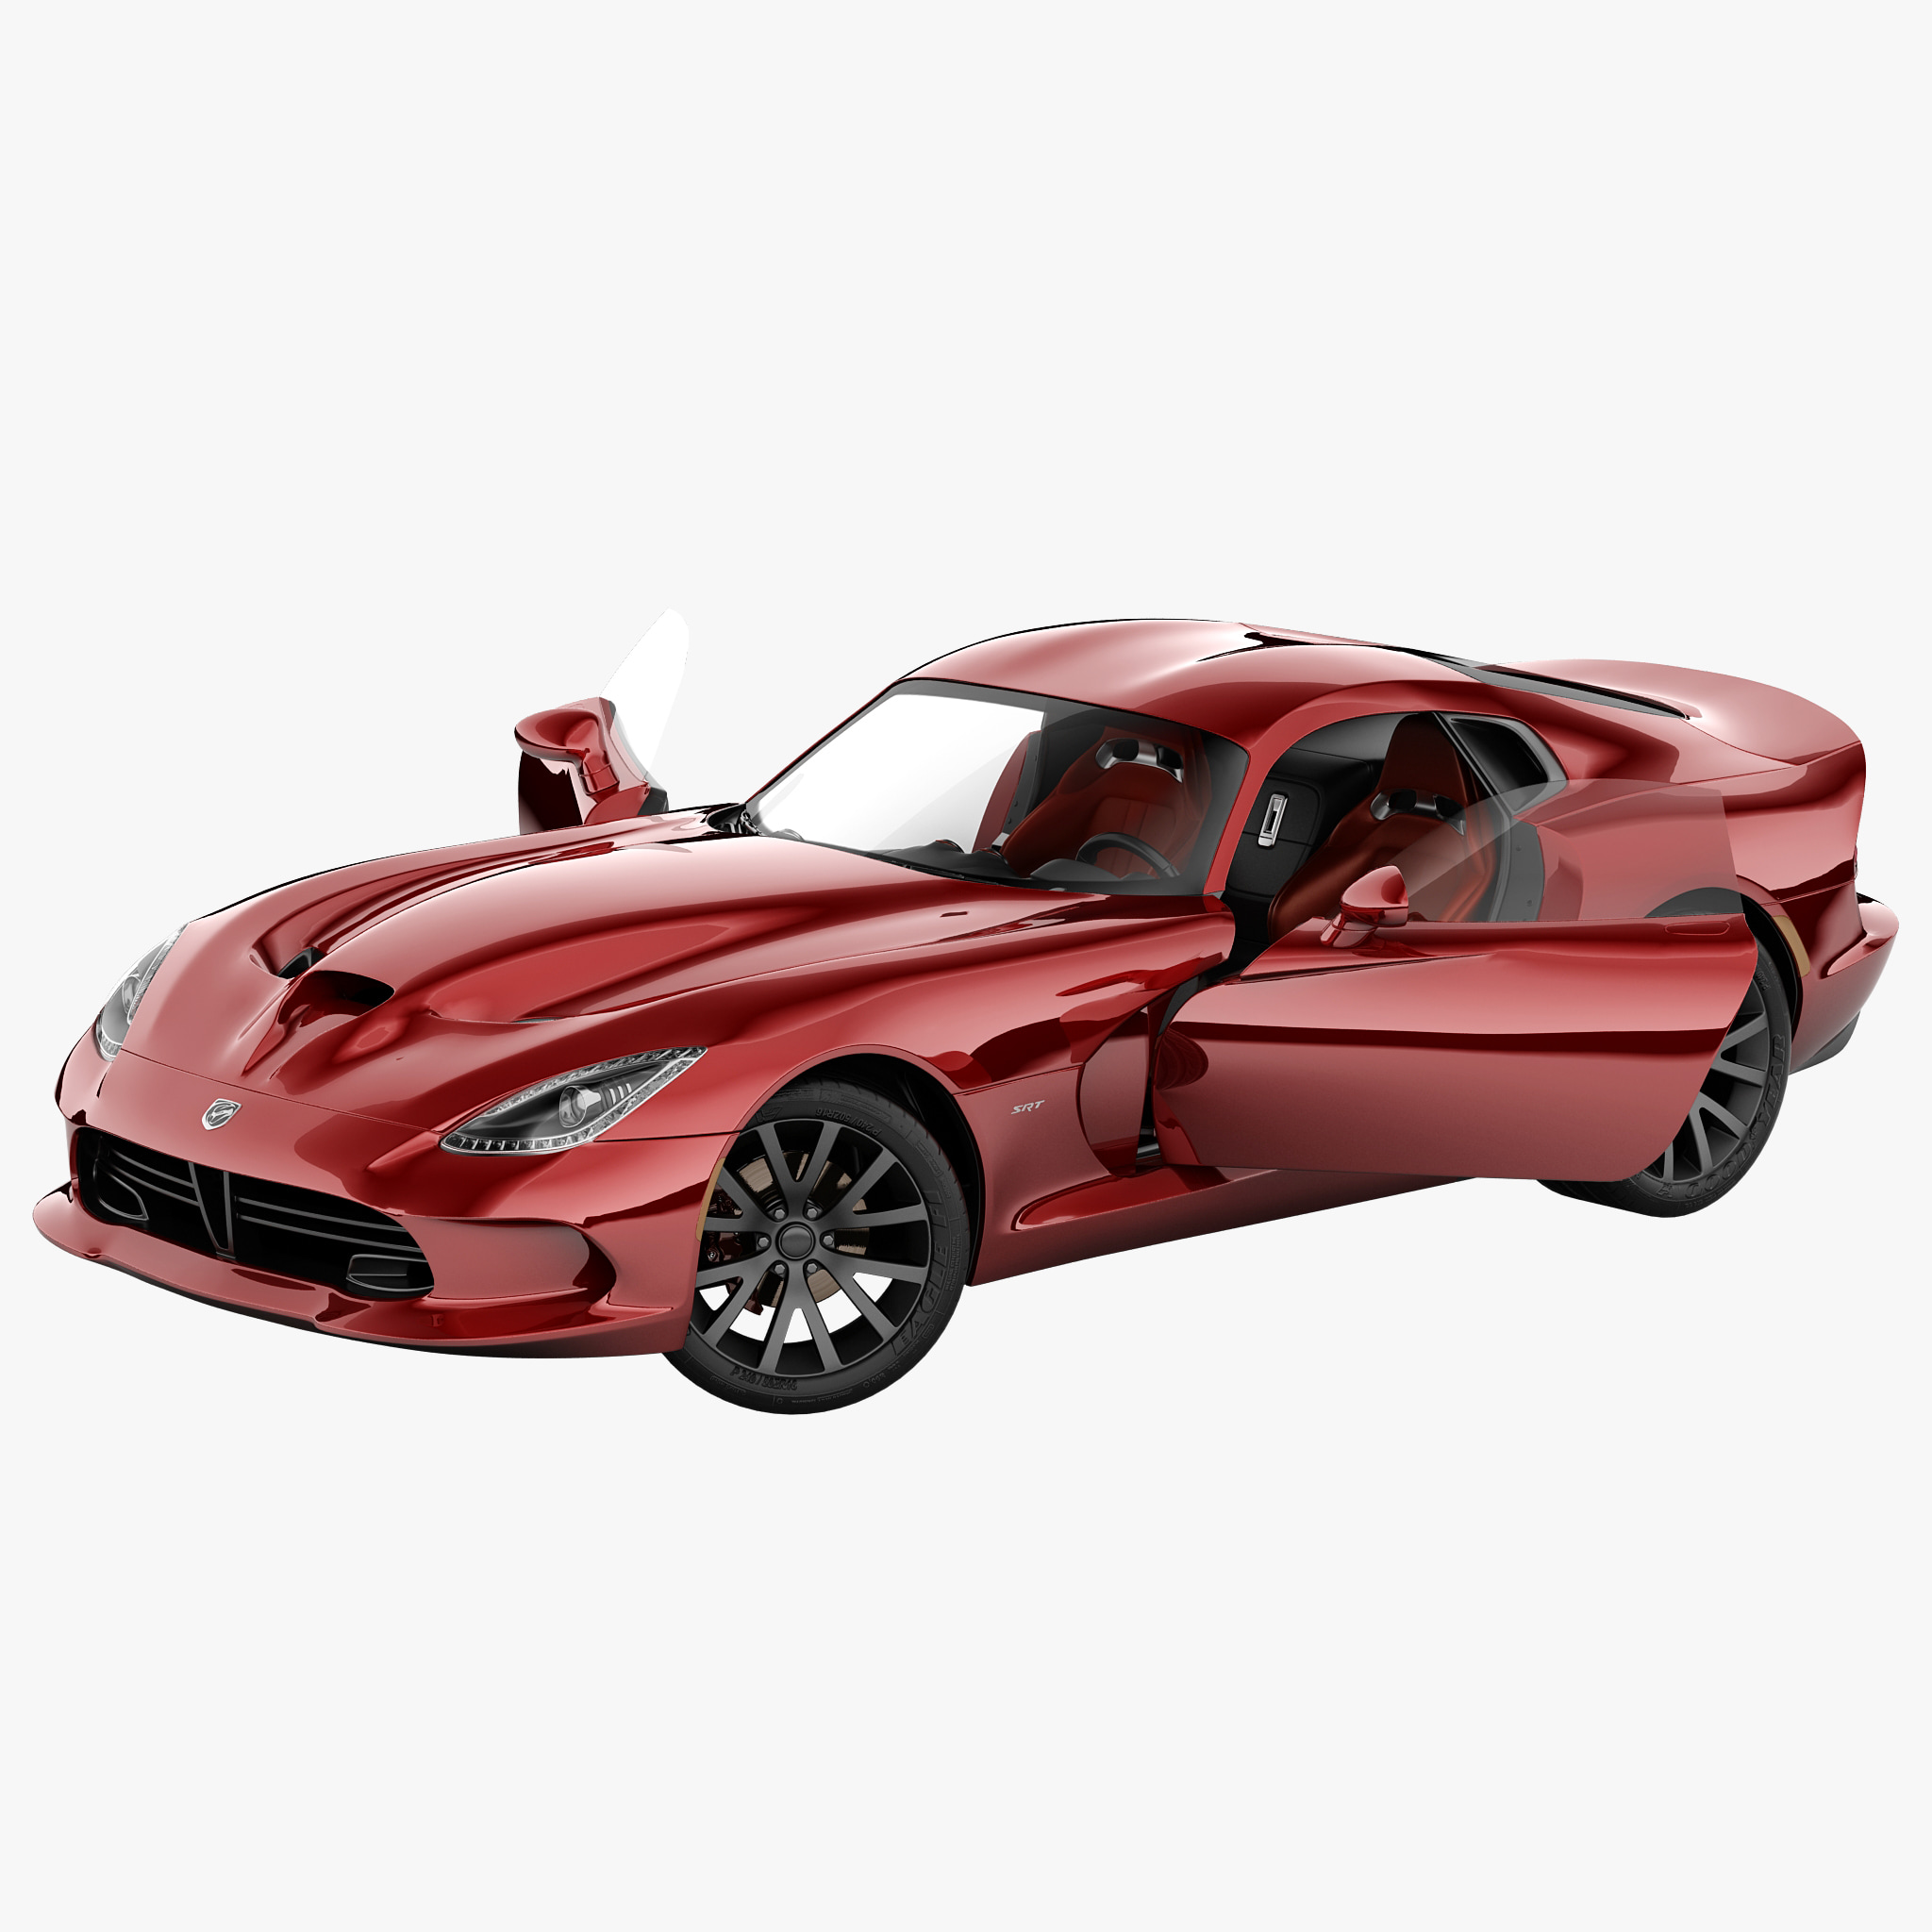 Dodge SRT Viper 2013 Rigged 2_1.jpg